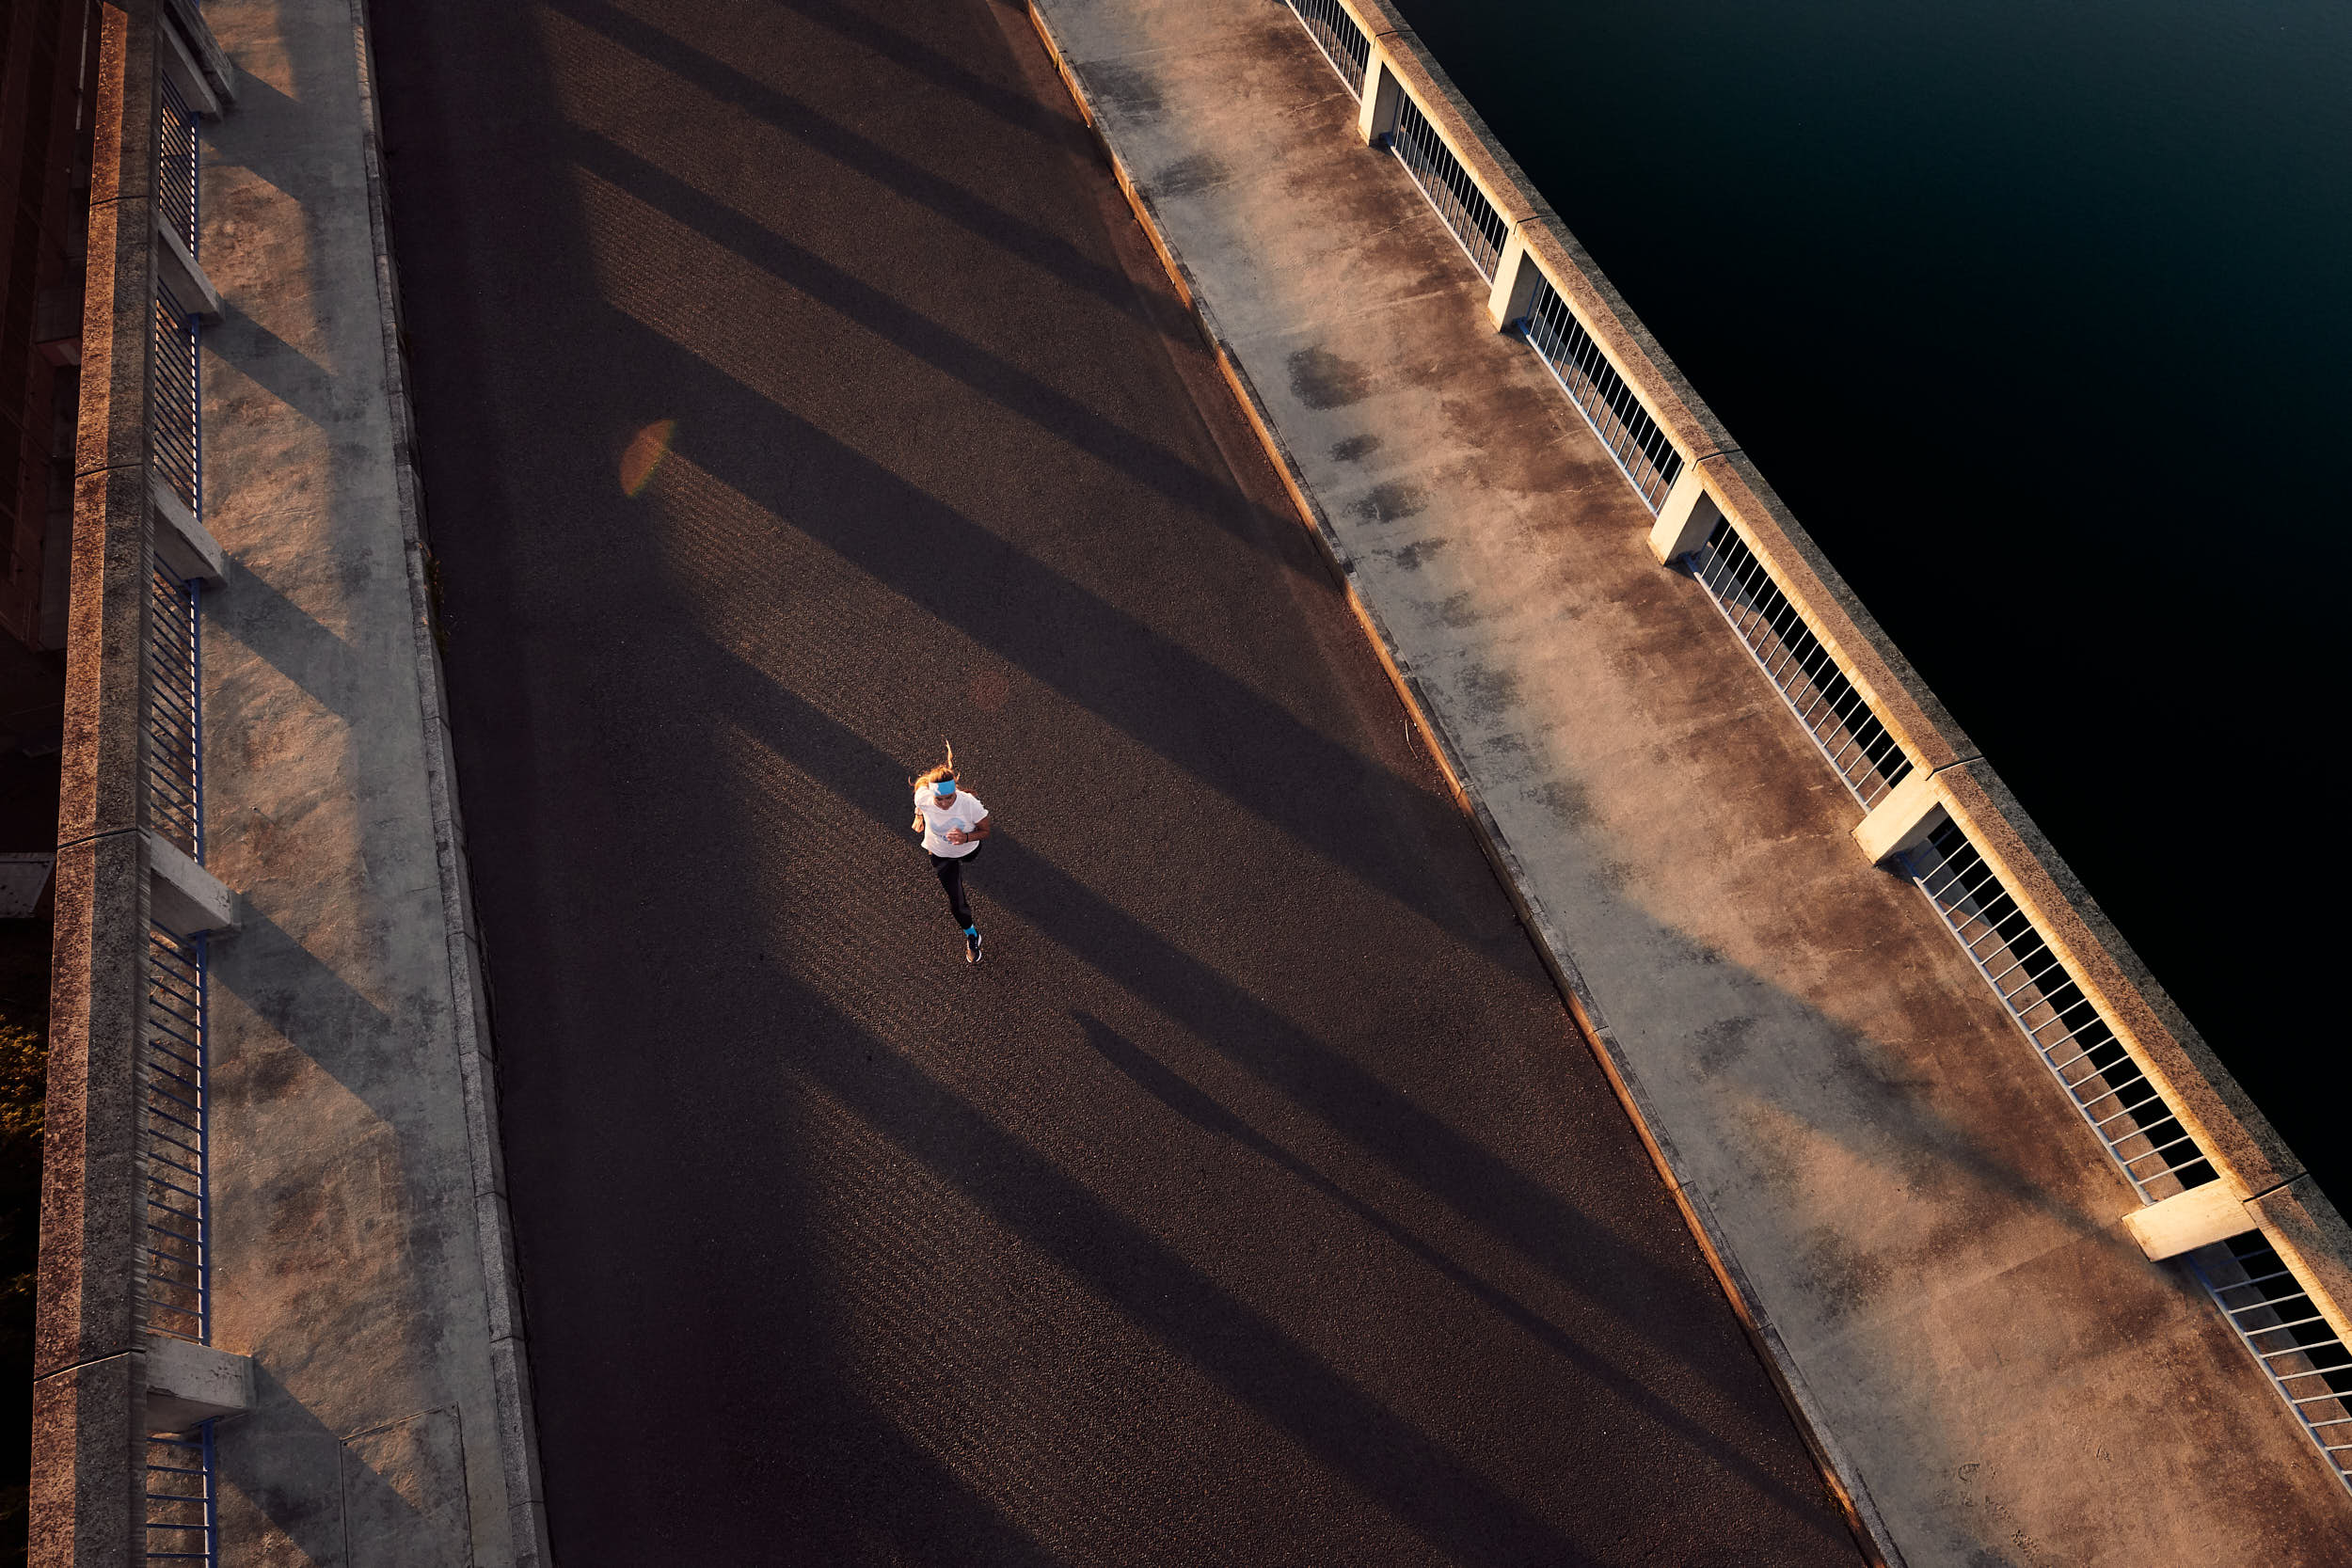 Sport advertising photography: girl running across a bridge in beautiful morning light.